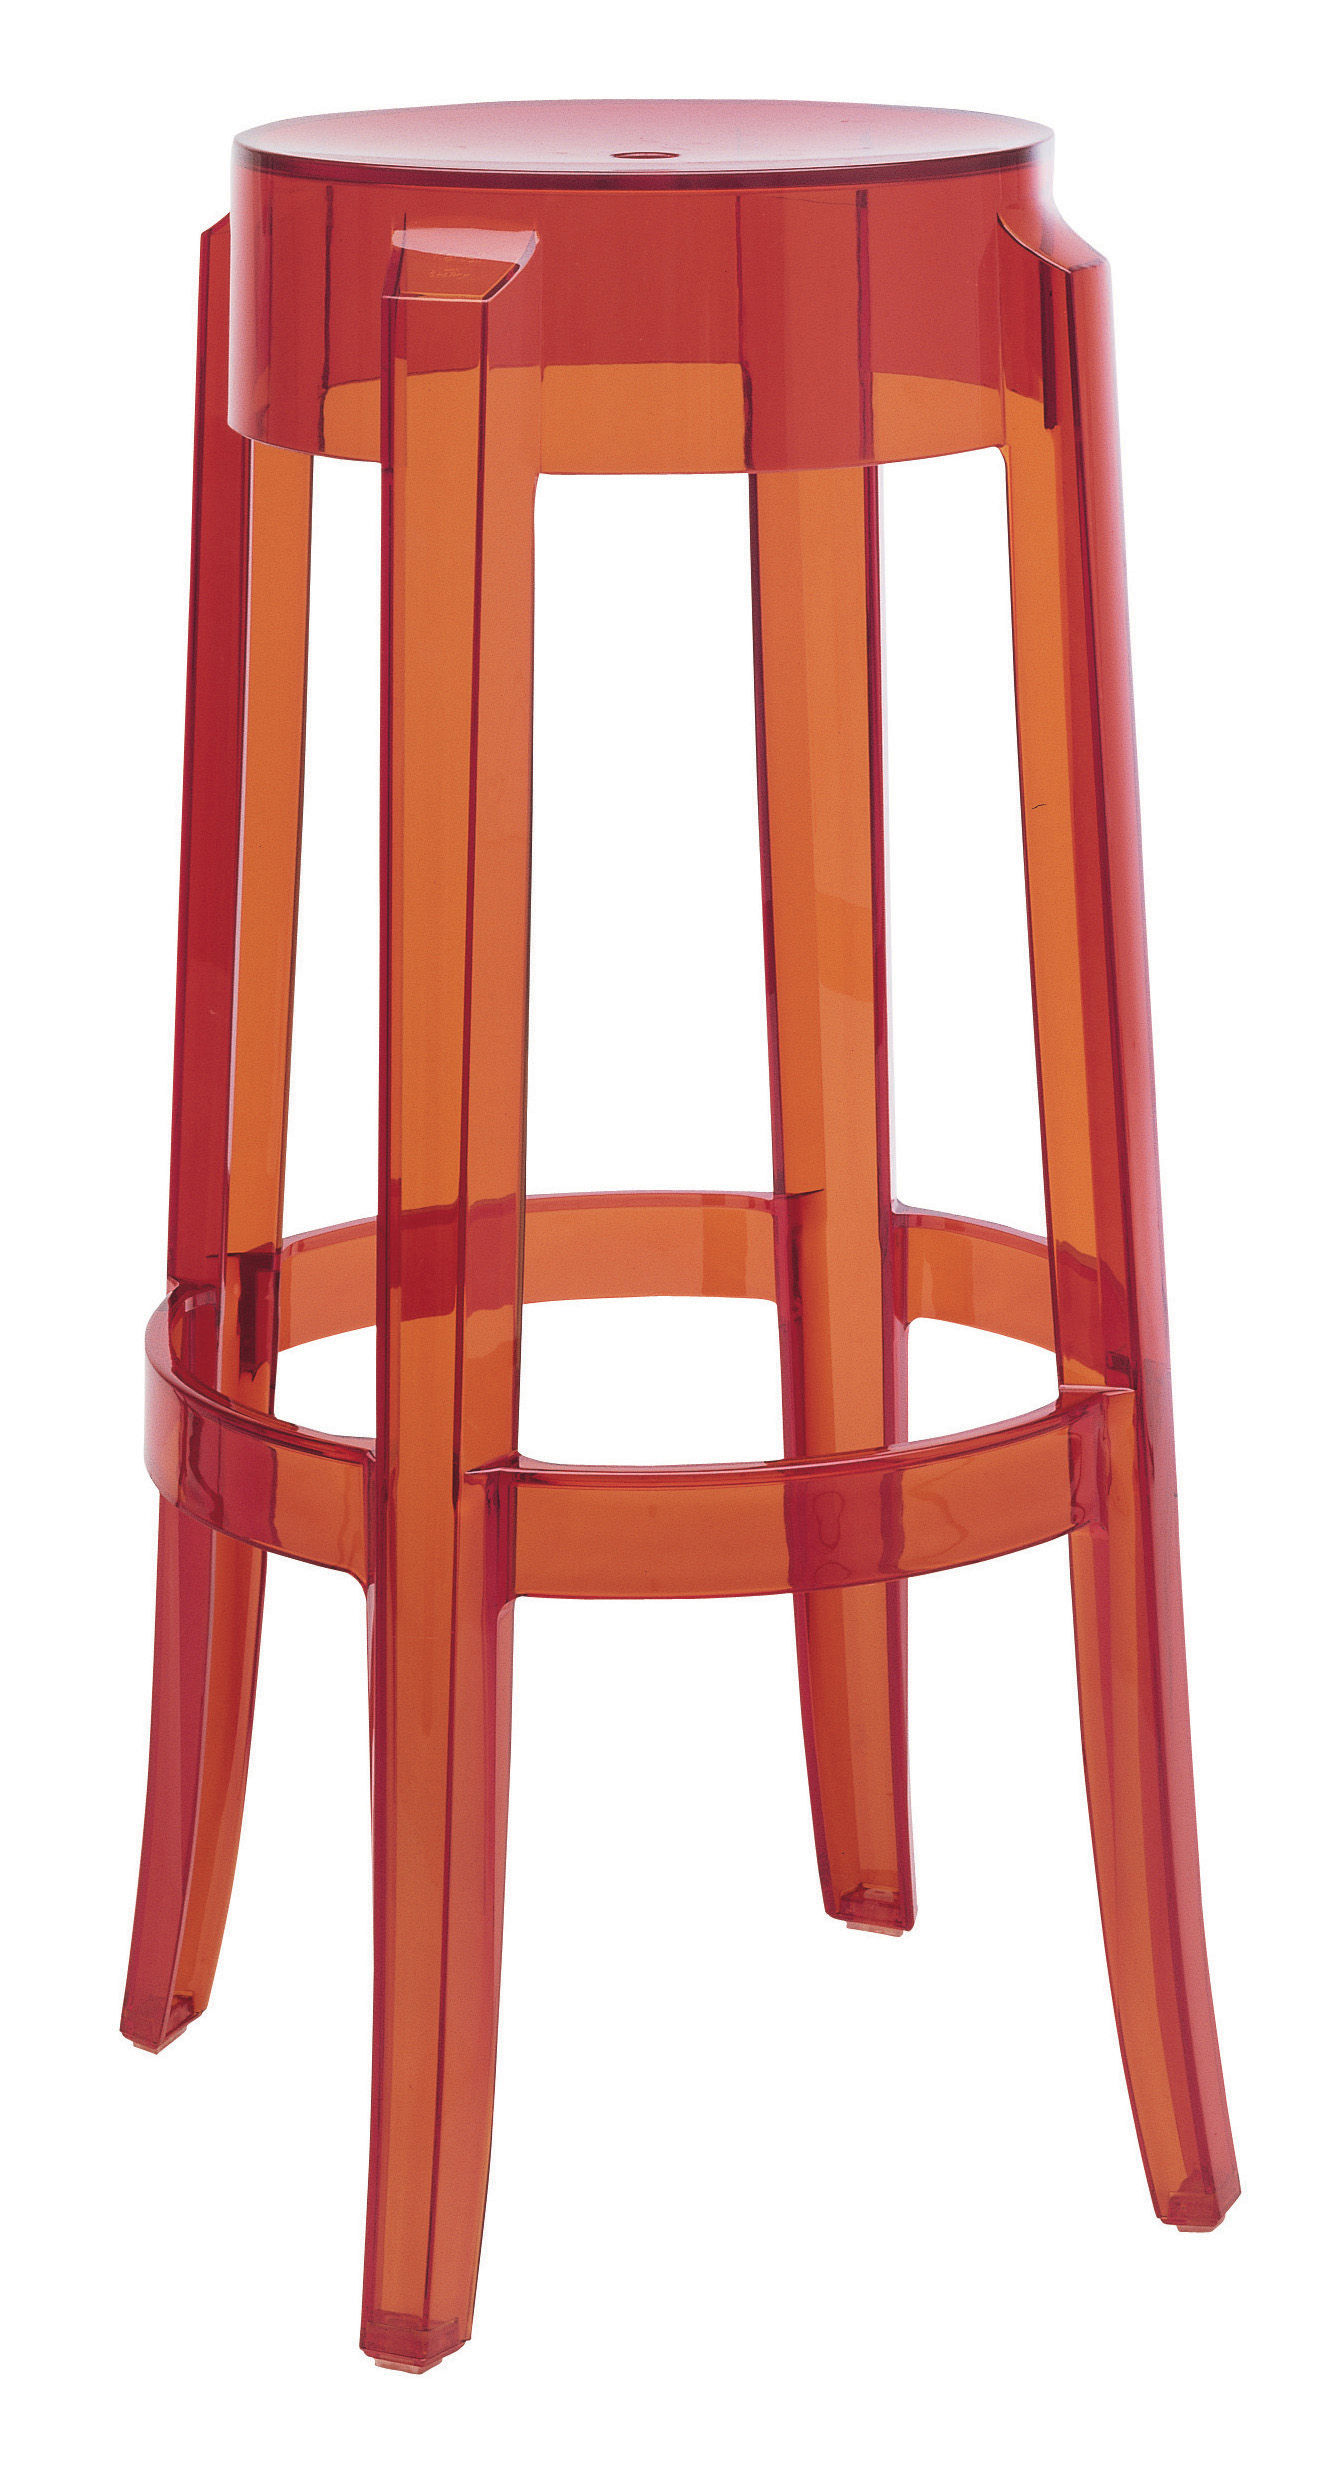 ghost bar chair office spare parts charles stool h 75 cm plastic orange by kartell